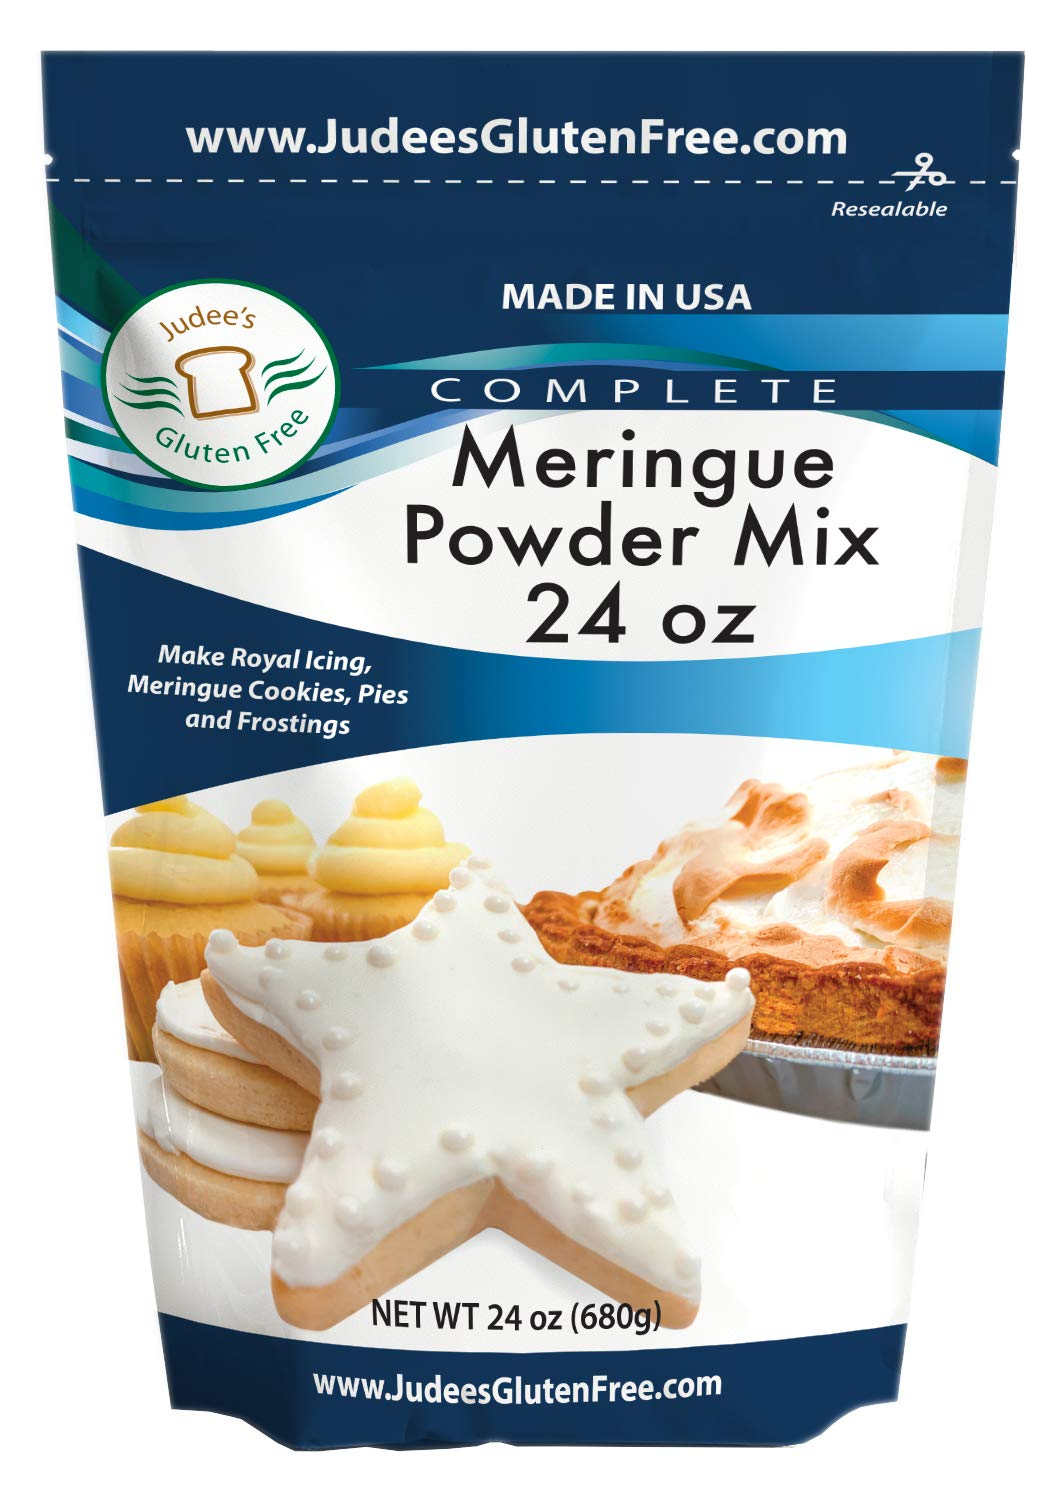 Judee's Meringue Powder Mix 1.5 lb (24 Oz) - Make Cookies, Pies, and Royal Icing. Complete Mix: Just Add Water. USA Made in a Dedicated Gluten & Nut Free Facility, No Preservatives